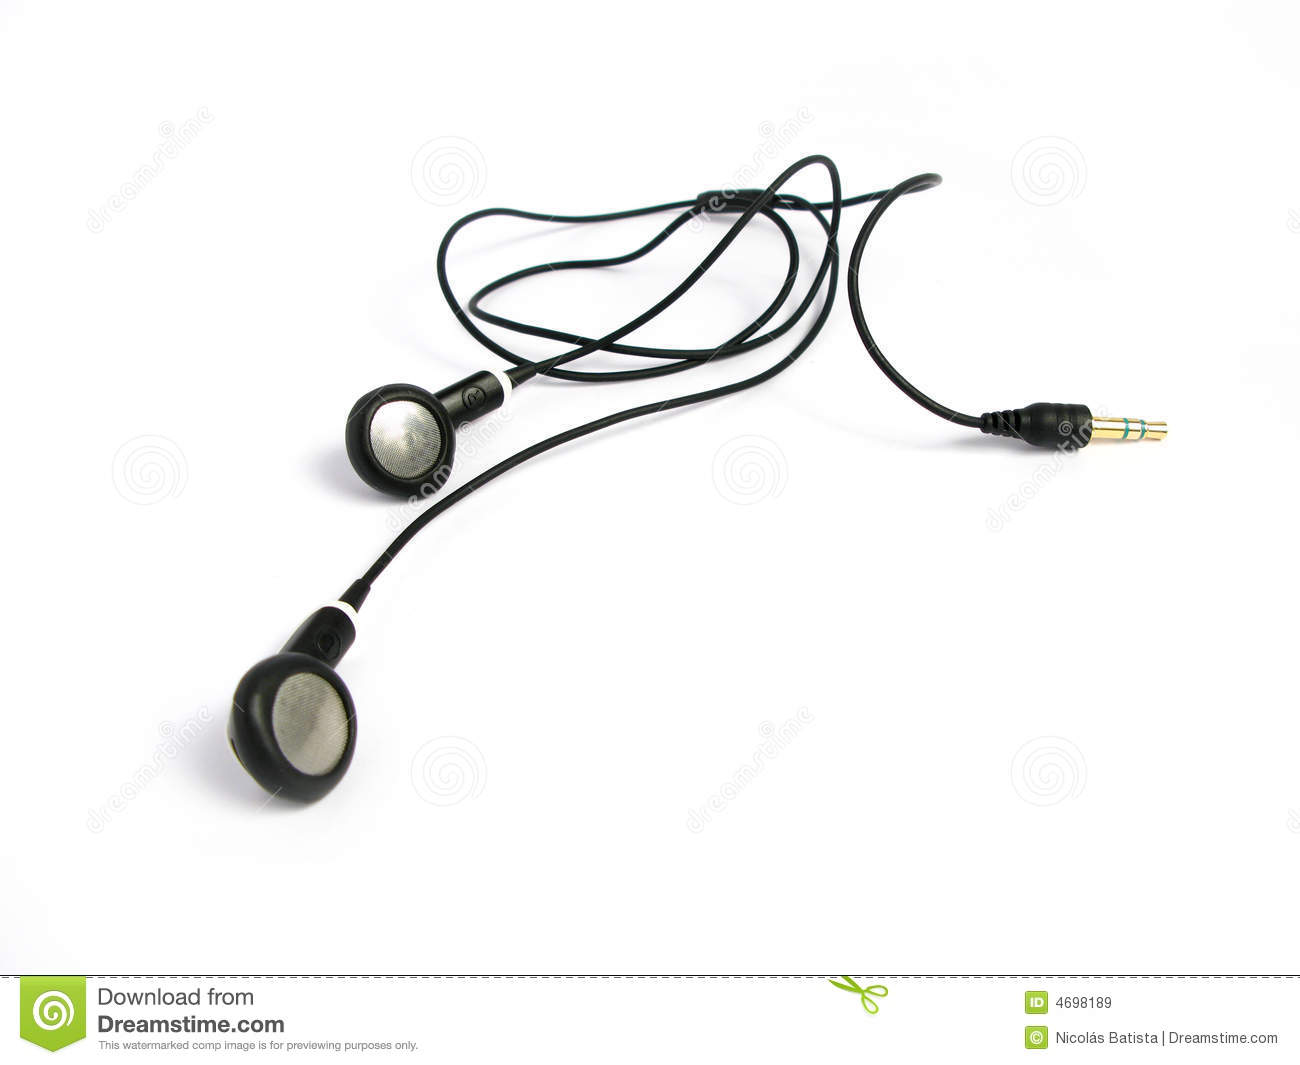 Http Dreamstime Com Royalty Free Stock Images Small Headphones Image4698189